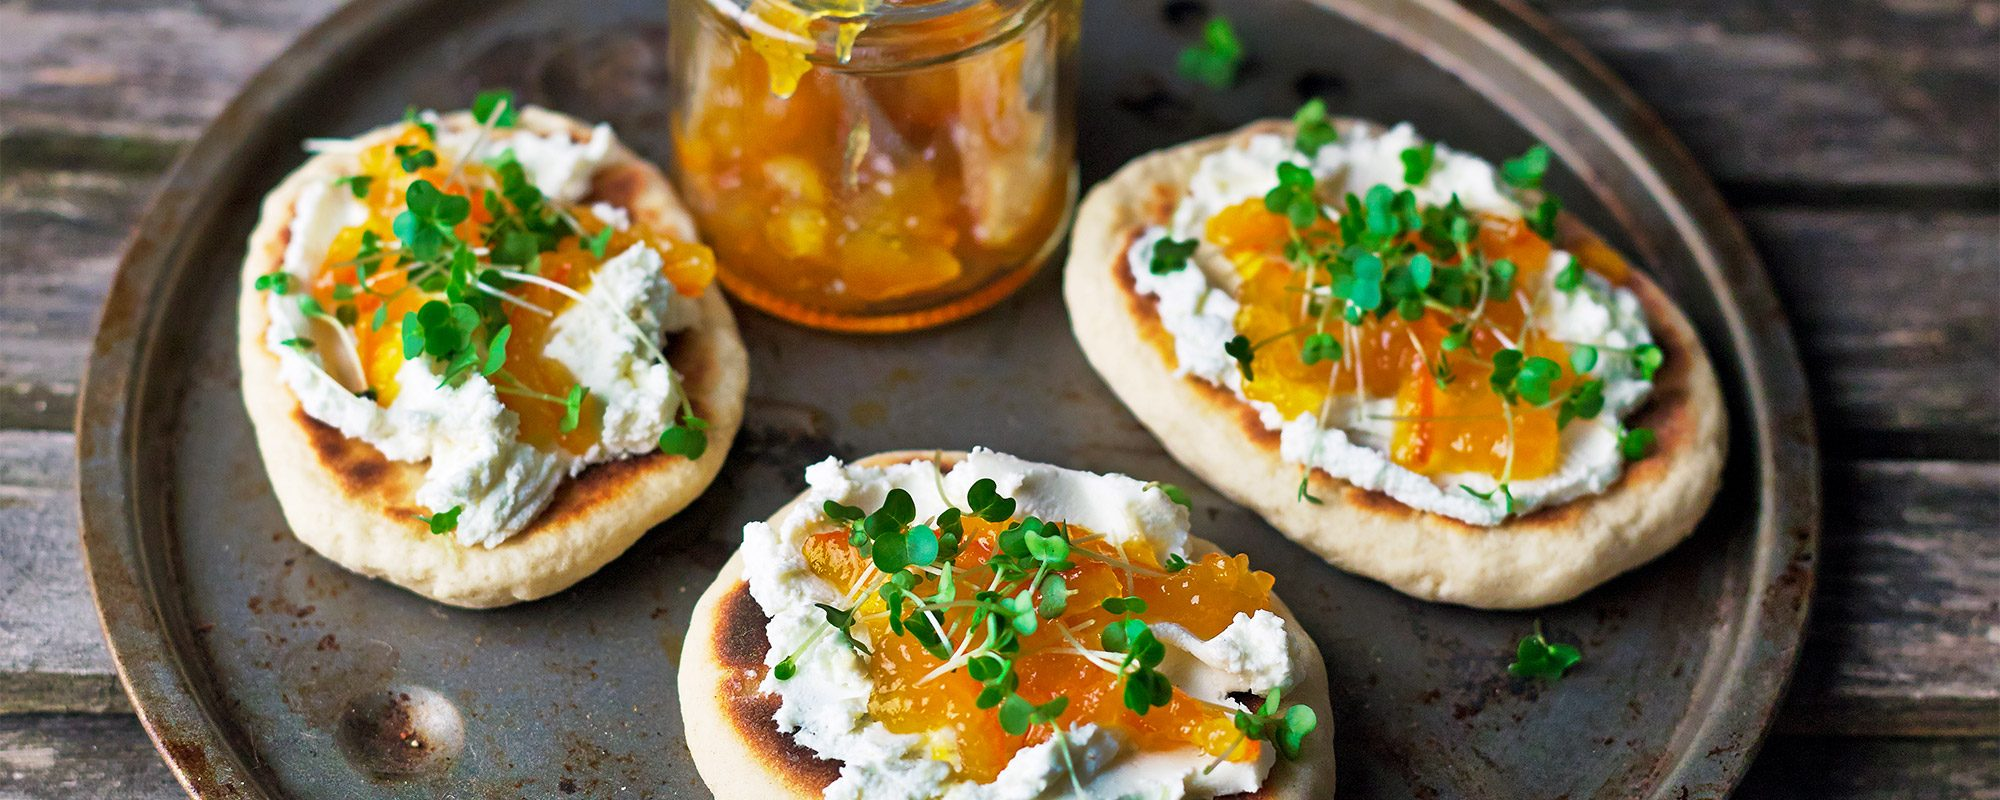 Goat's Cheese, Marmalade and Salad Cress Flatbreads